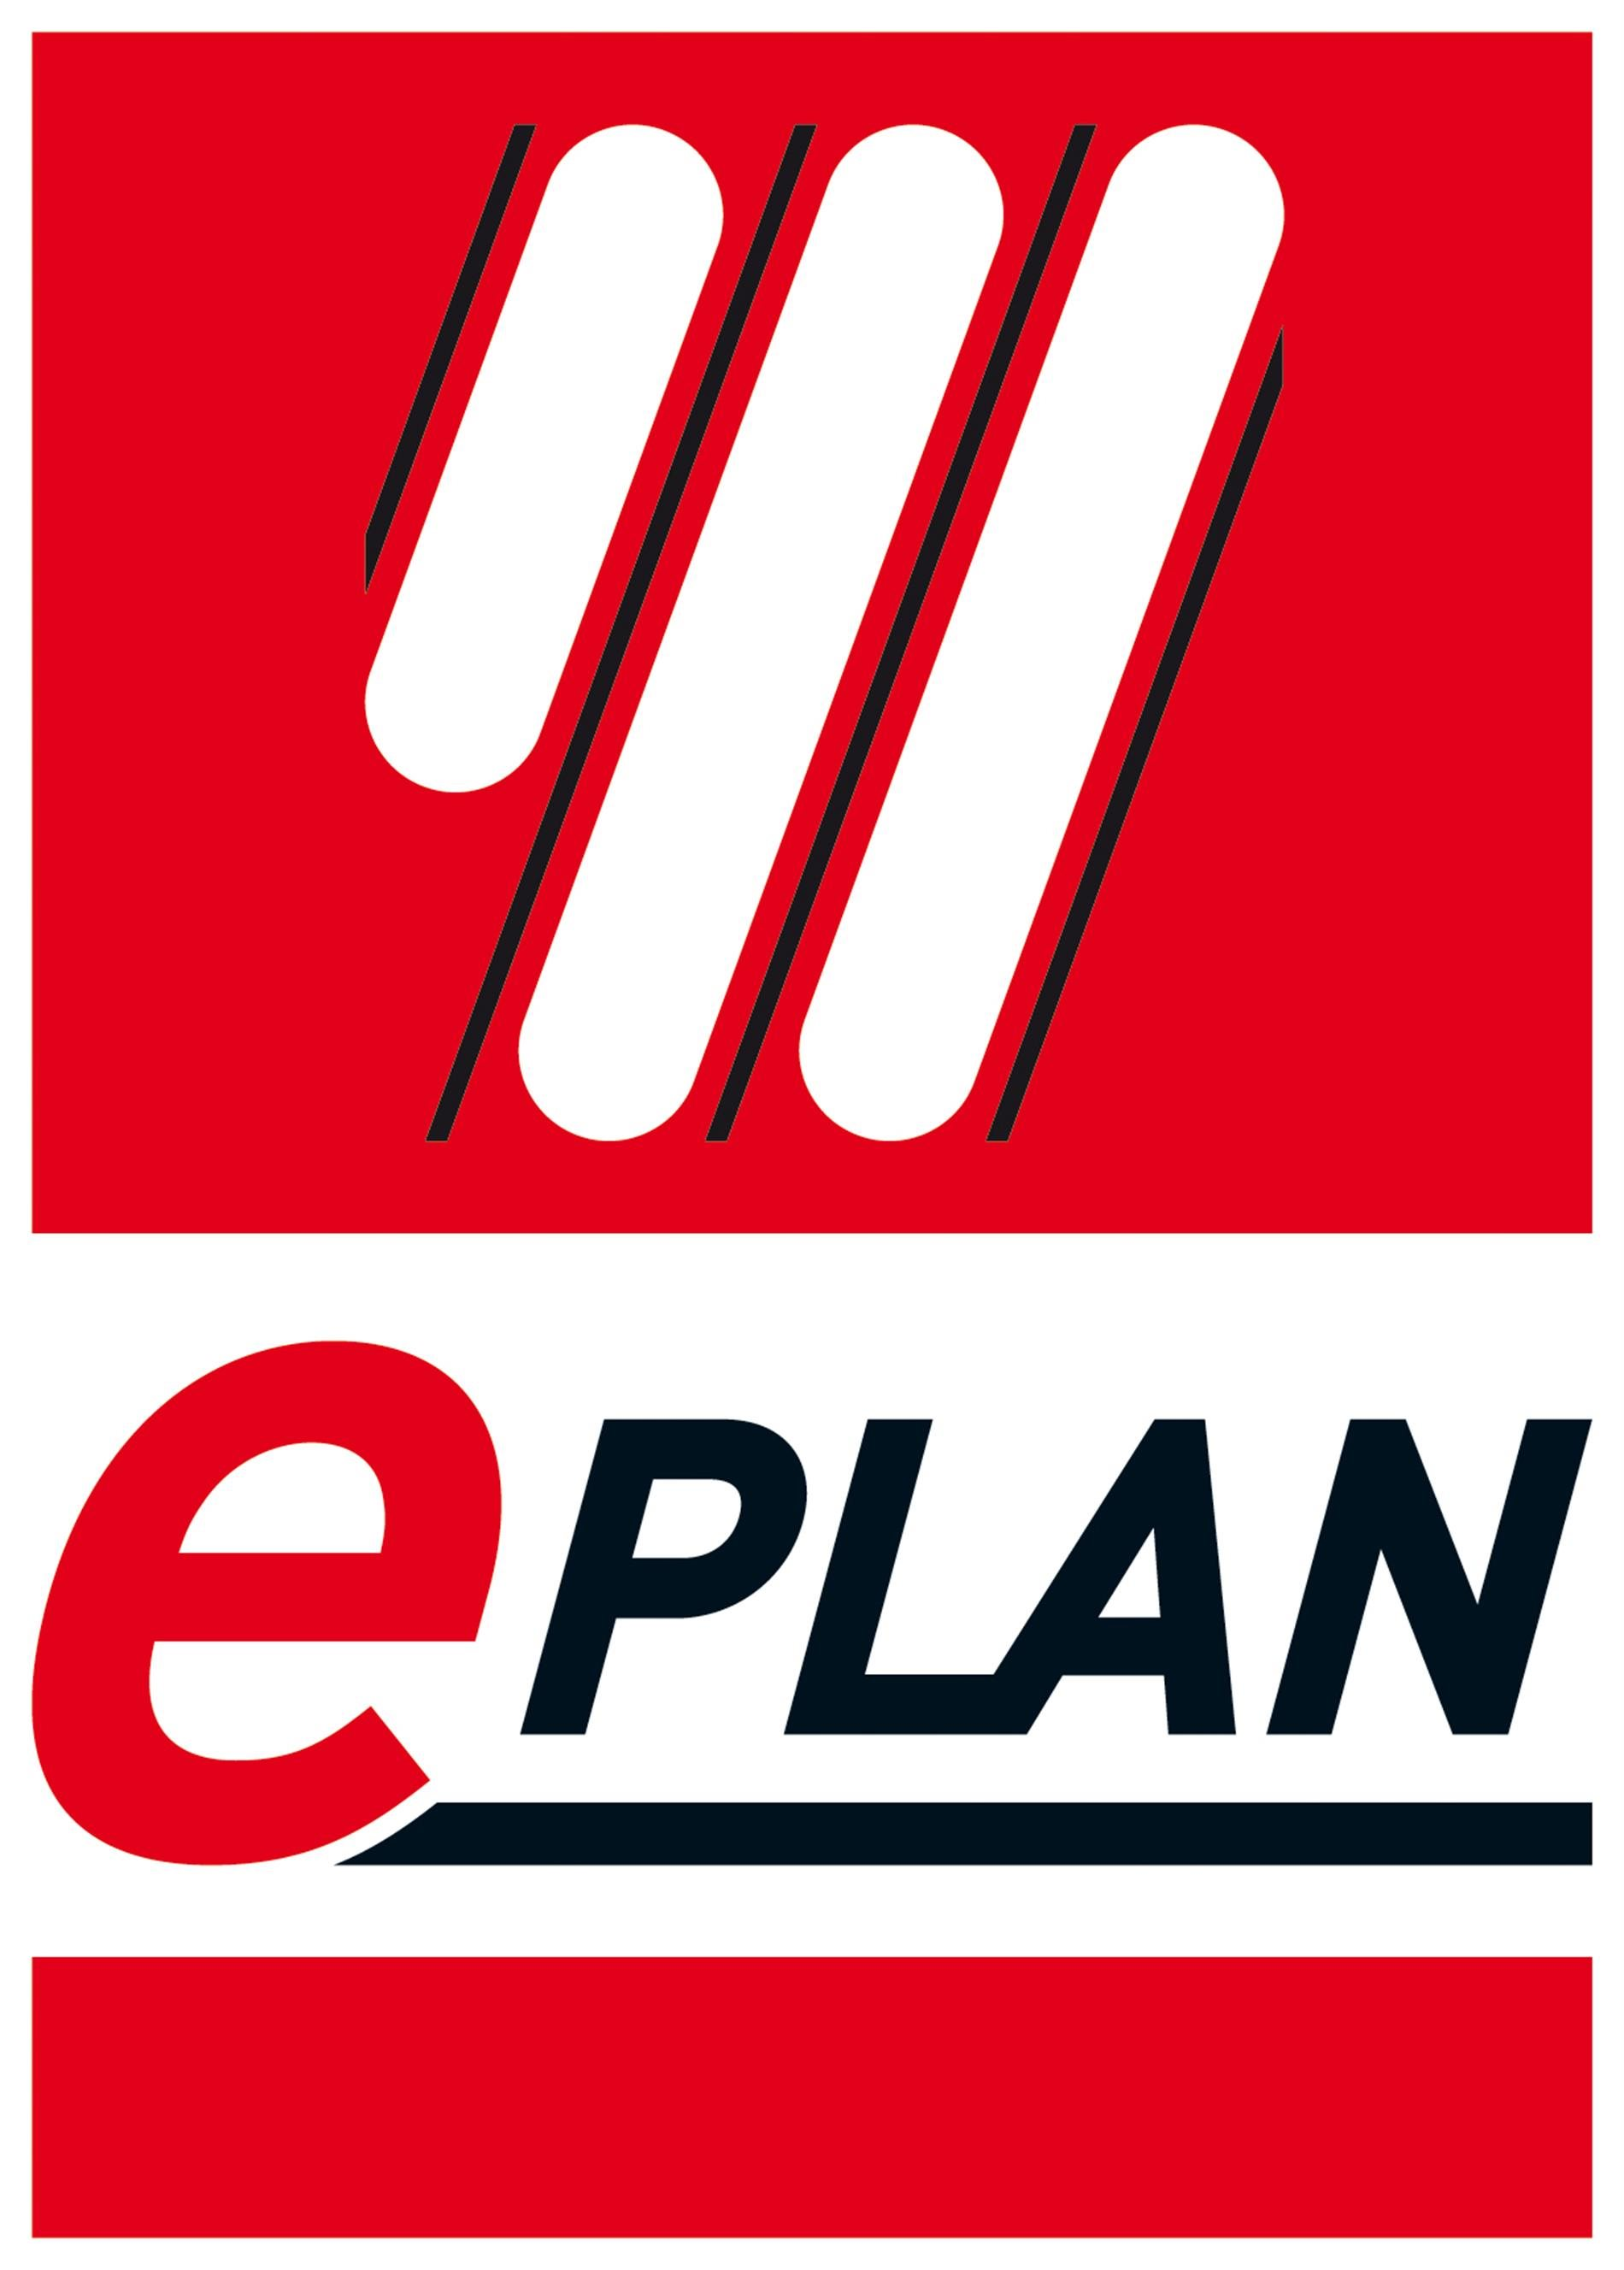 EPLAN Software and Services